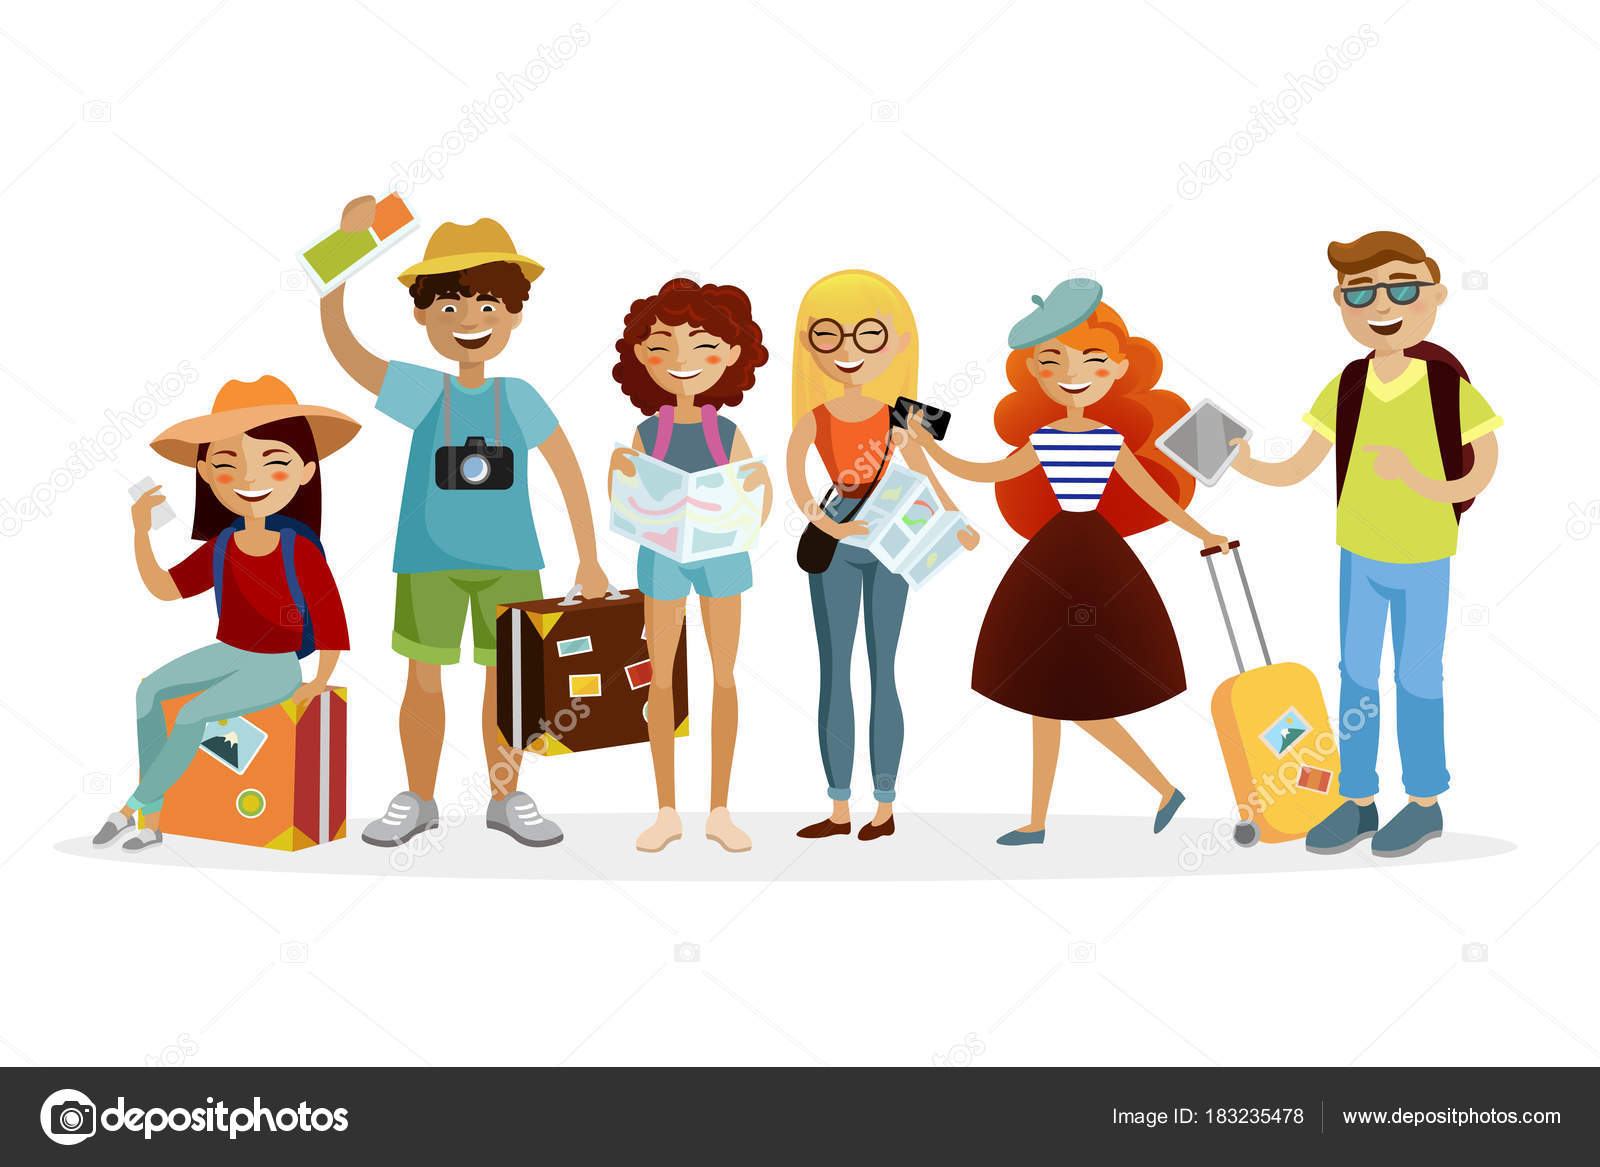 Group Of Tourists Cartoon Characters Vector Flat Illustration Young Funny People With Suitcases Are Traveling Together Stock Vector C Bezvershenko 183235478